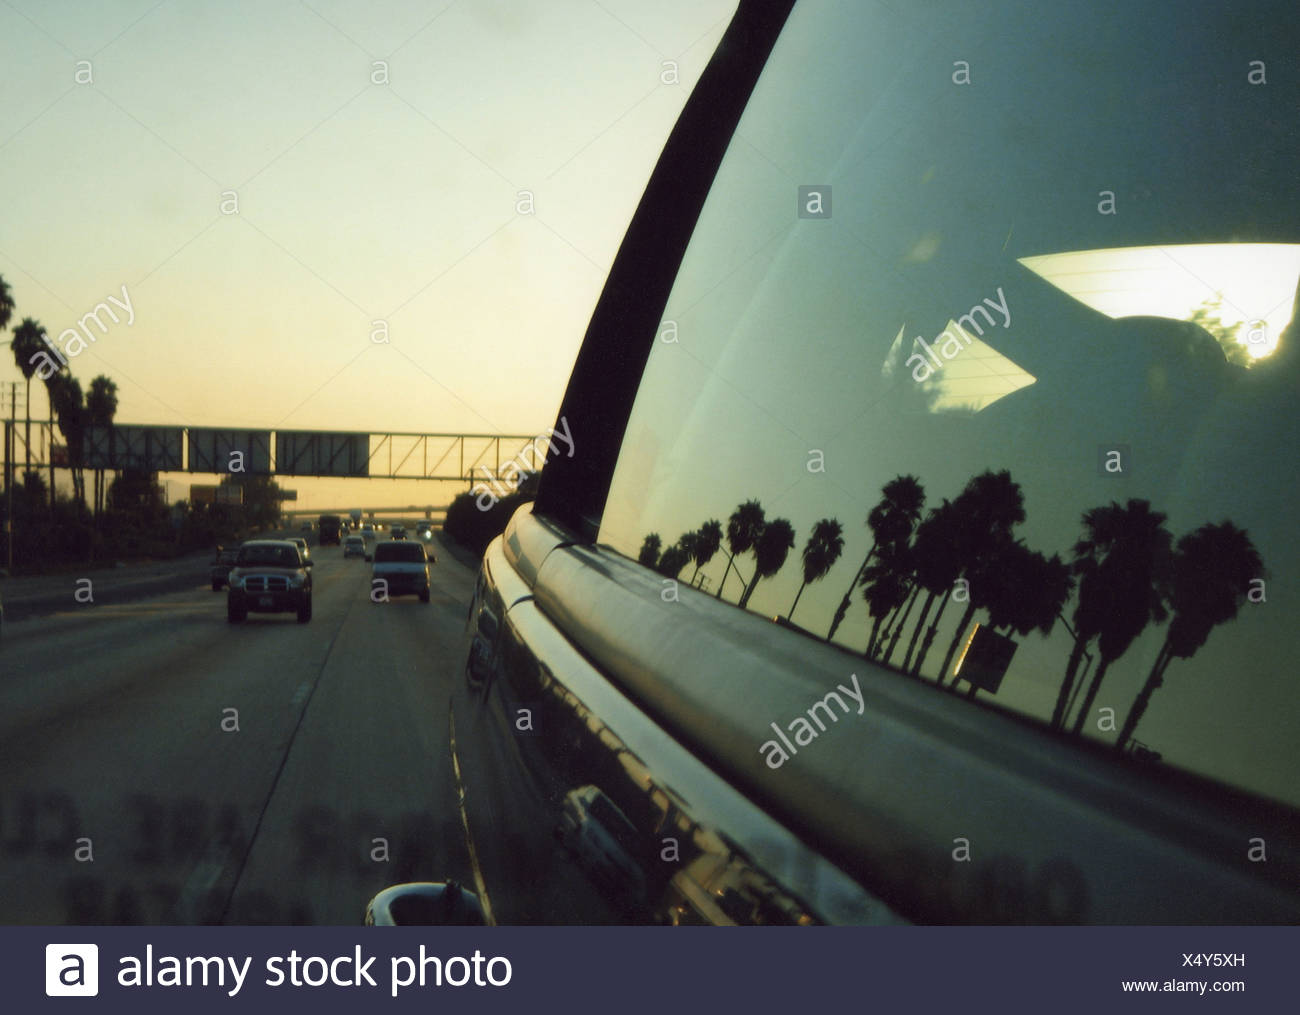 Reflections of palm trees in a car window in southern California - Stock Image